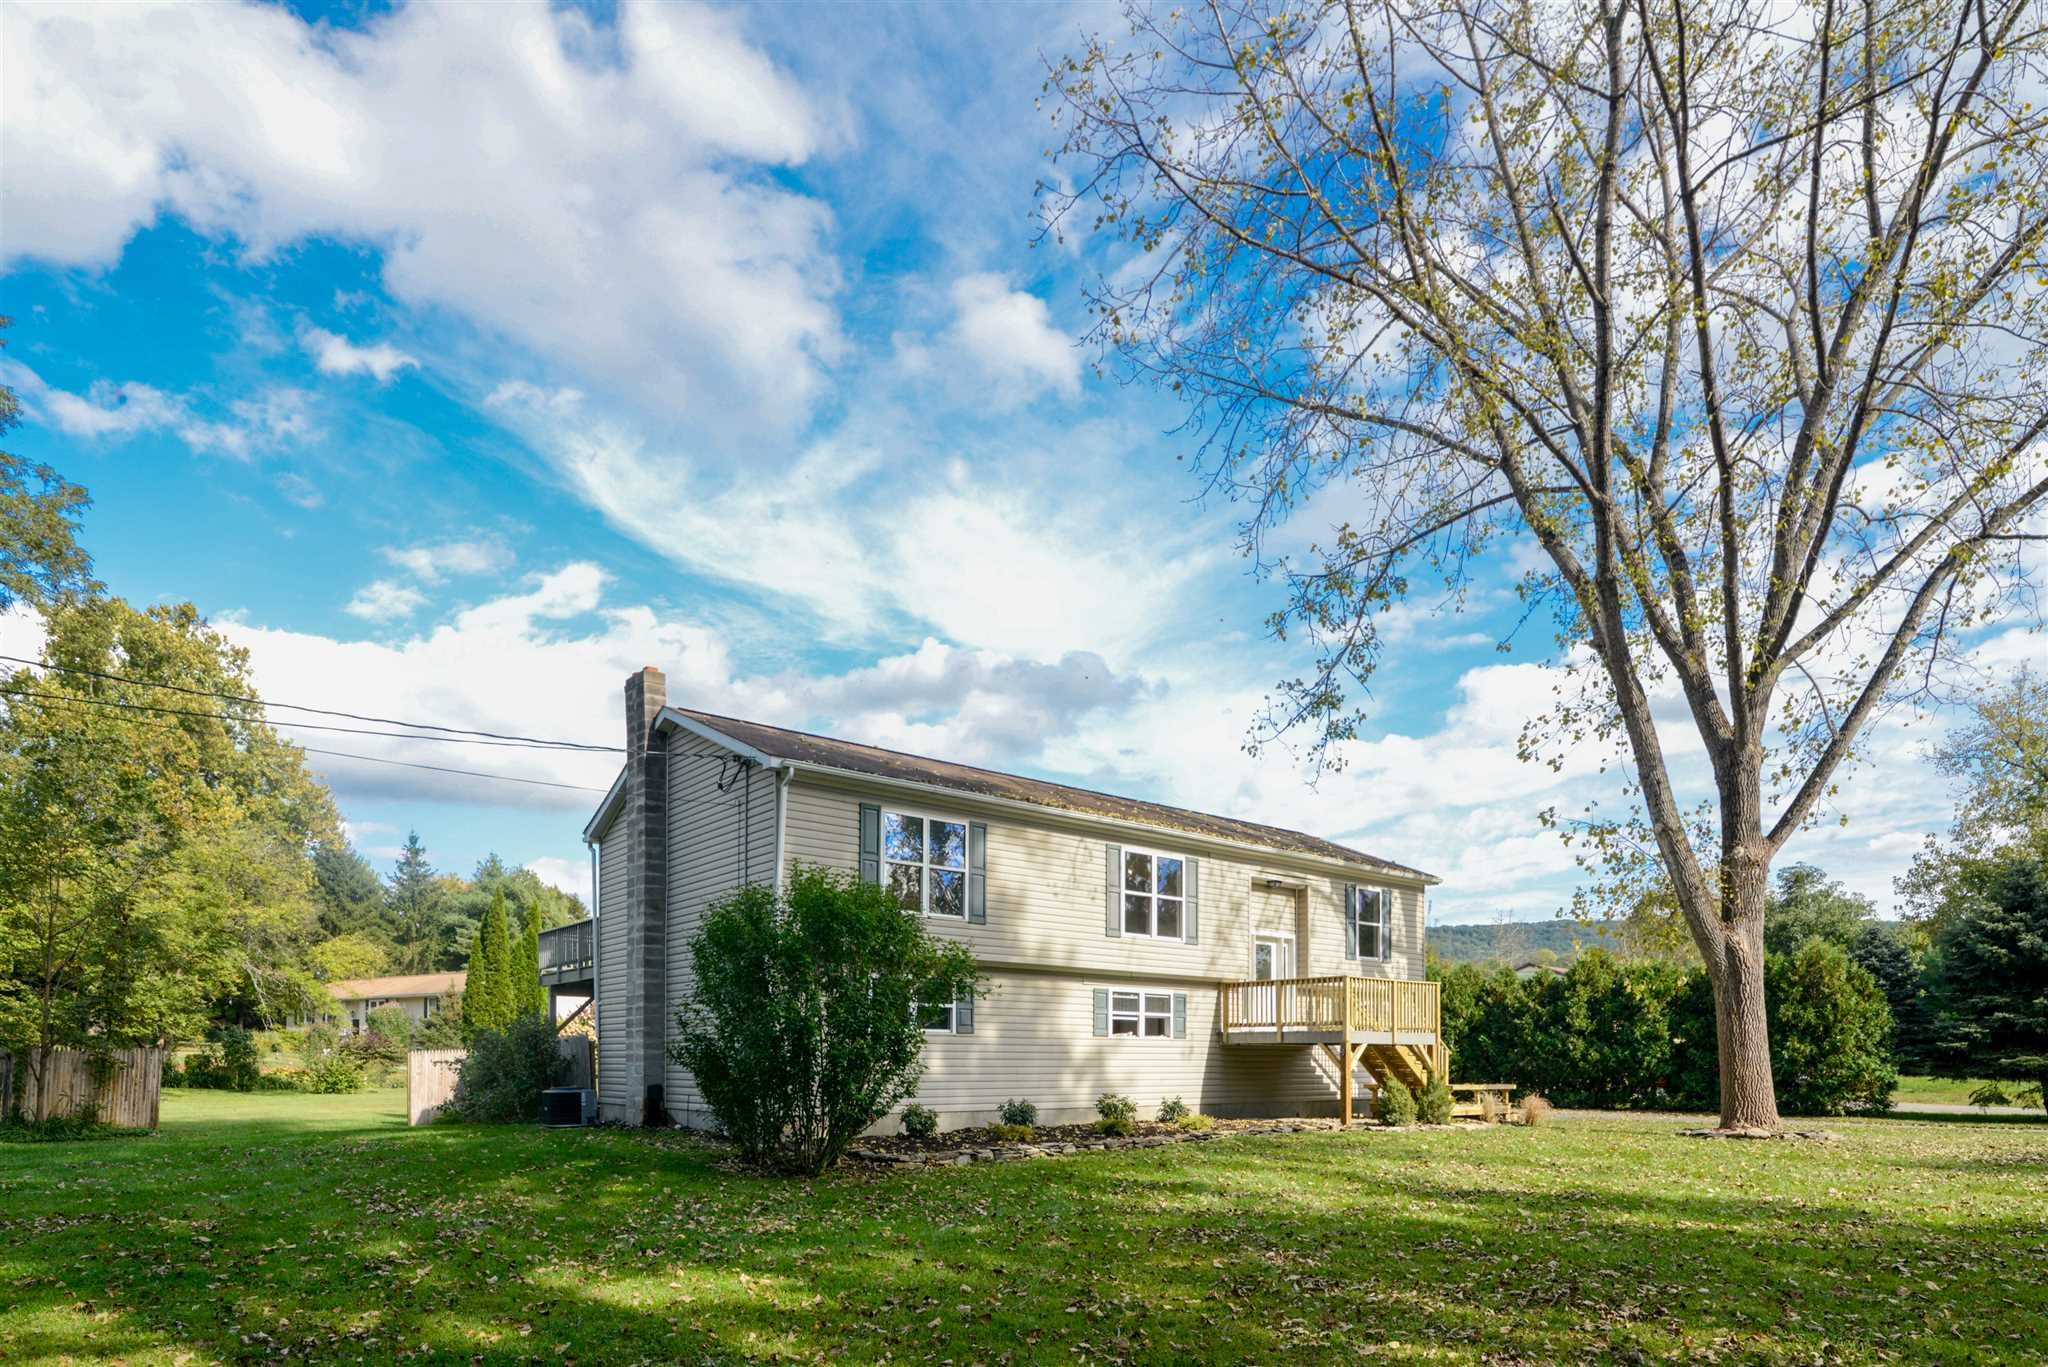 Single Family Home for Sale at 79 TEN MILE RIVER 79 TEN MILE RIVER Dover Plains, New York 12522 United States